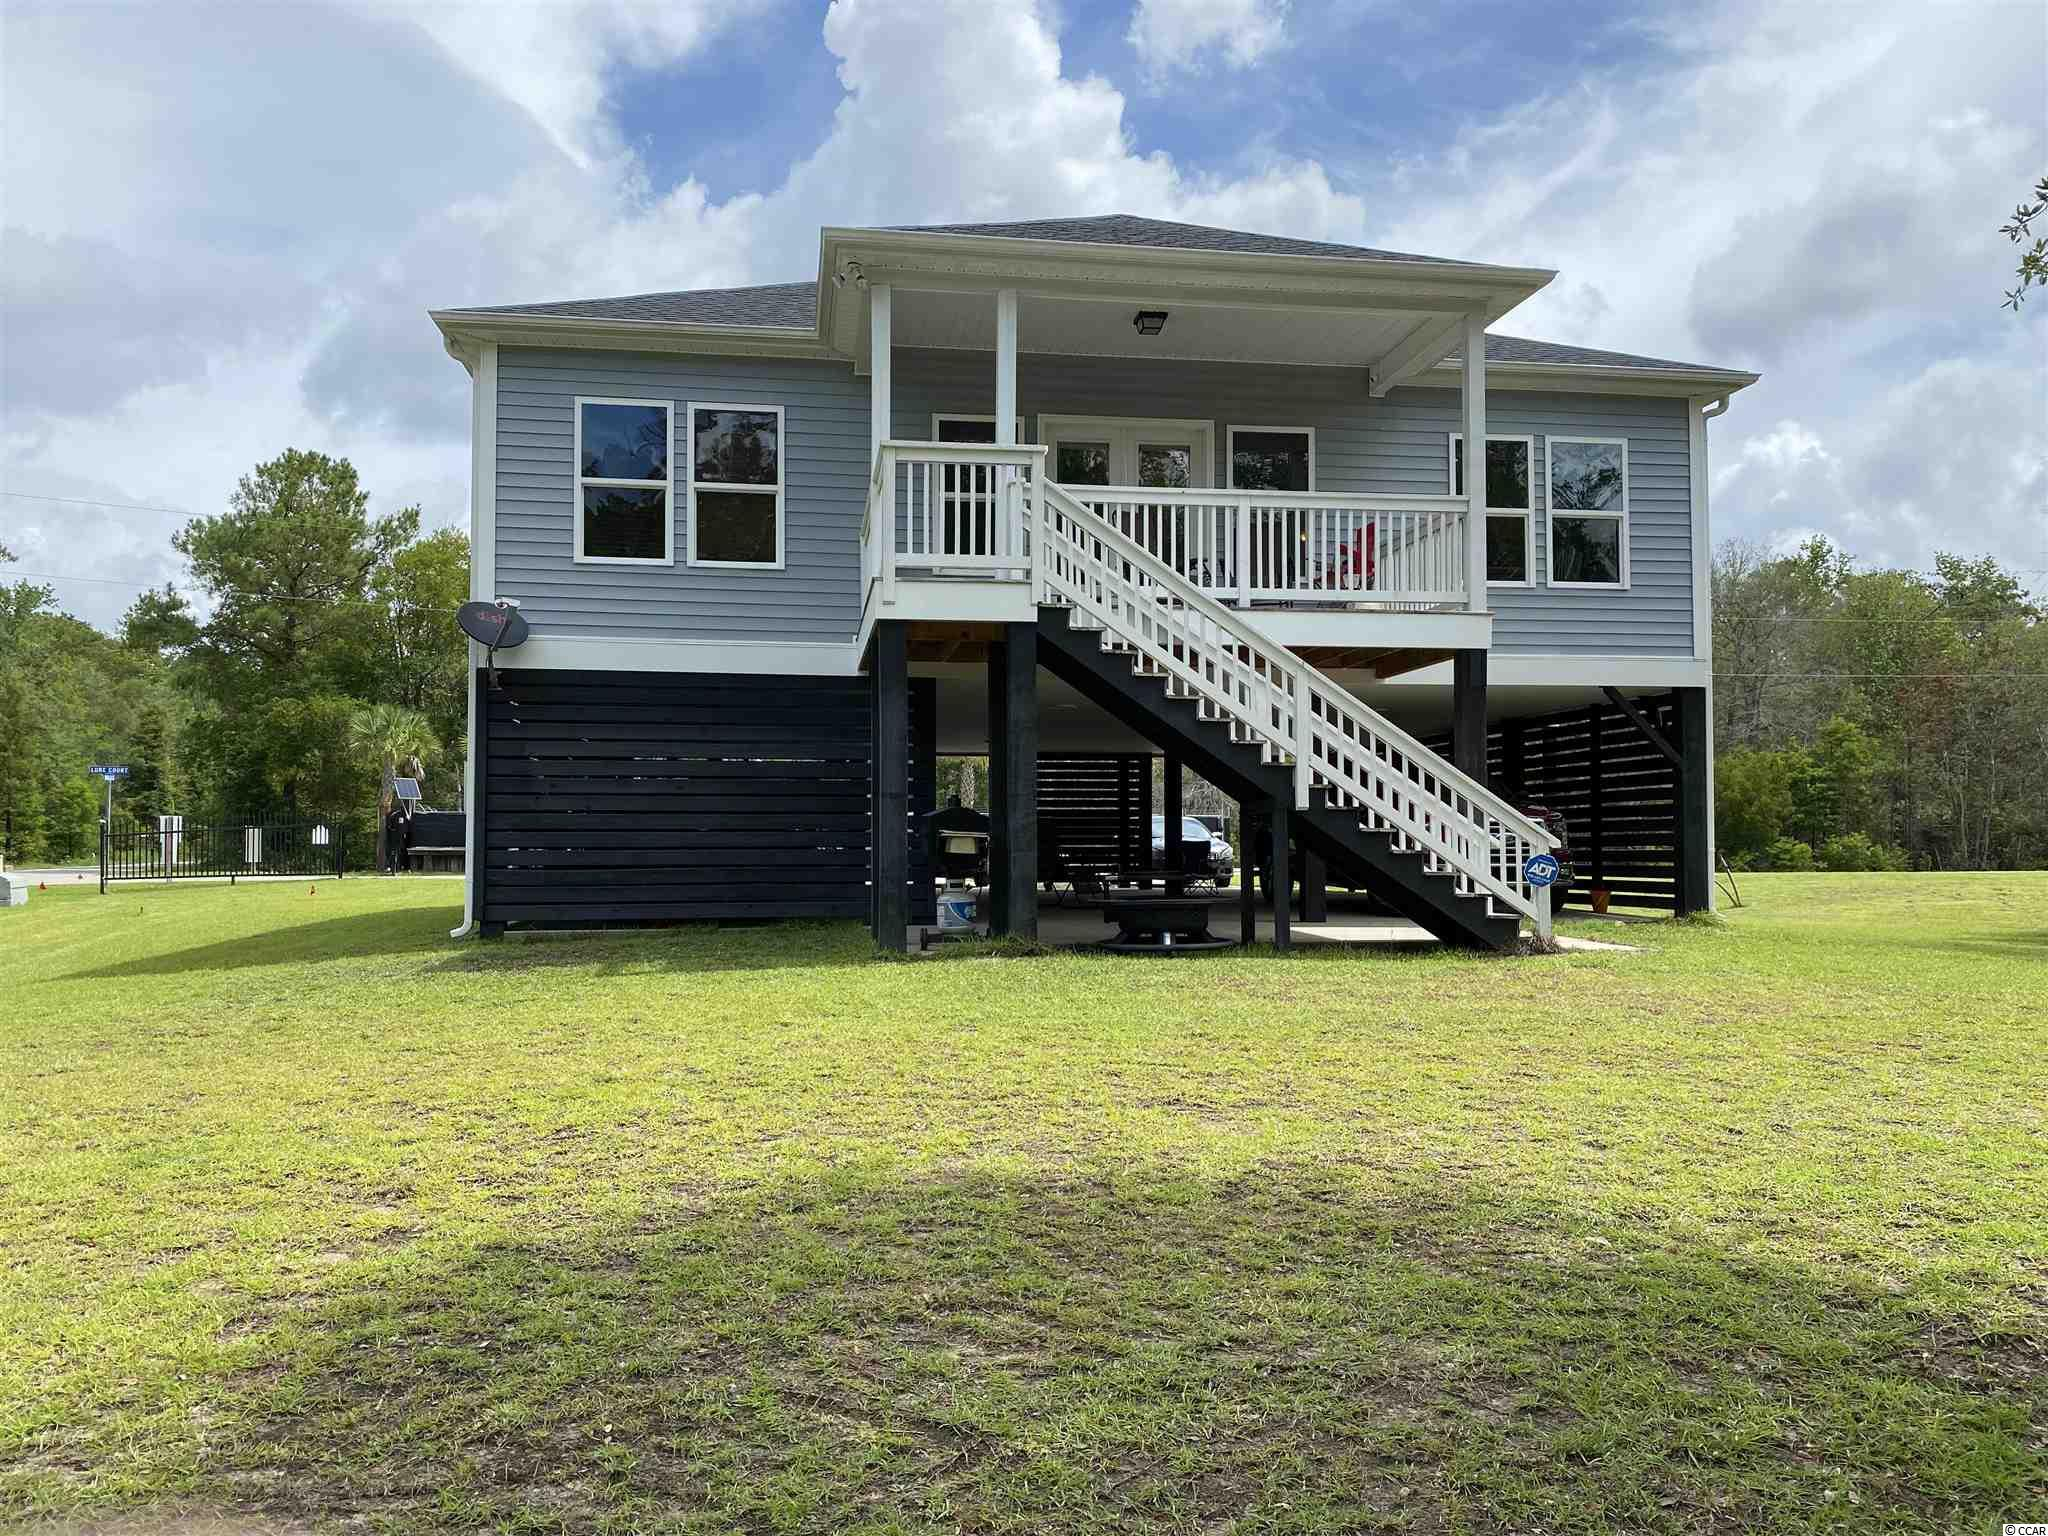 Located on the Waccamaw river Conway sc, this 4 bed 2 bath, front covered porch, rear covered porch, security system, grand stand water and sewer, never been rented or smoked in home is a must to see. Water Oaks Landing, a private and gated community  is a one of a kind subdivision. Home was built in 2018.  This is a very unique area. Only one remaining lot left out of 16.  please call me for more info. The view is breath taking.